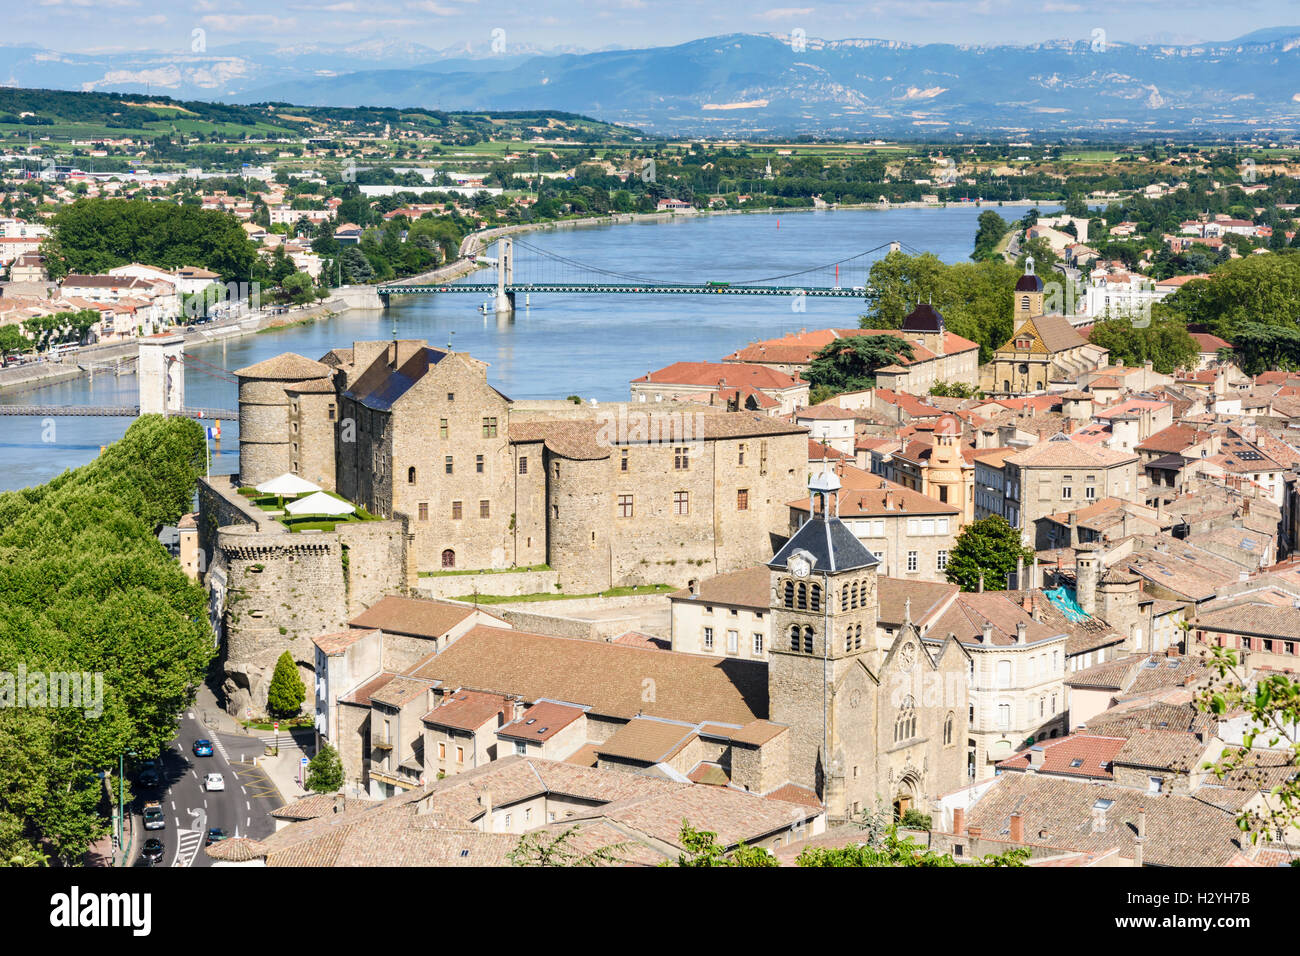 Views over the town of Tournon-sur-Rhône, its Château and the Rhône River separating the Drôme - Stock Image